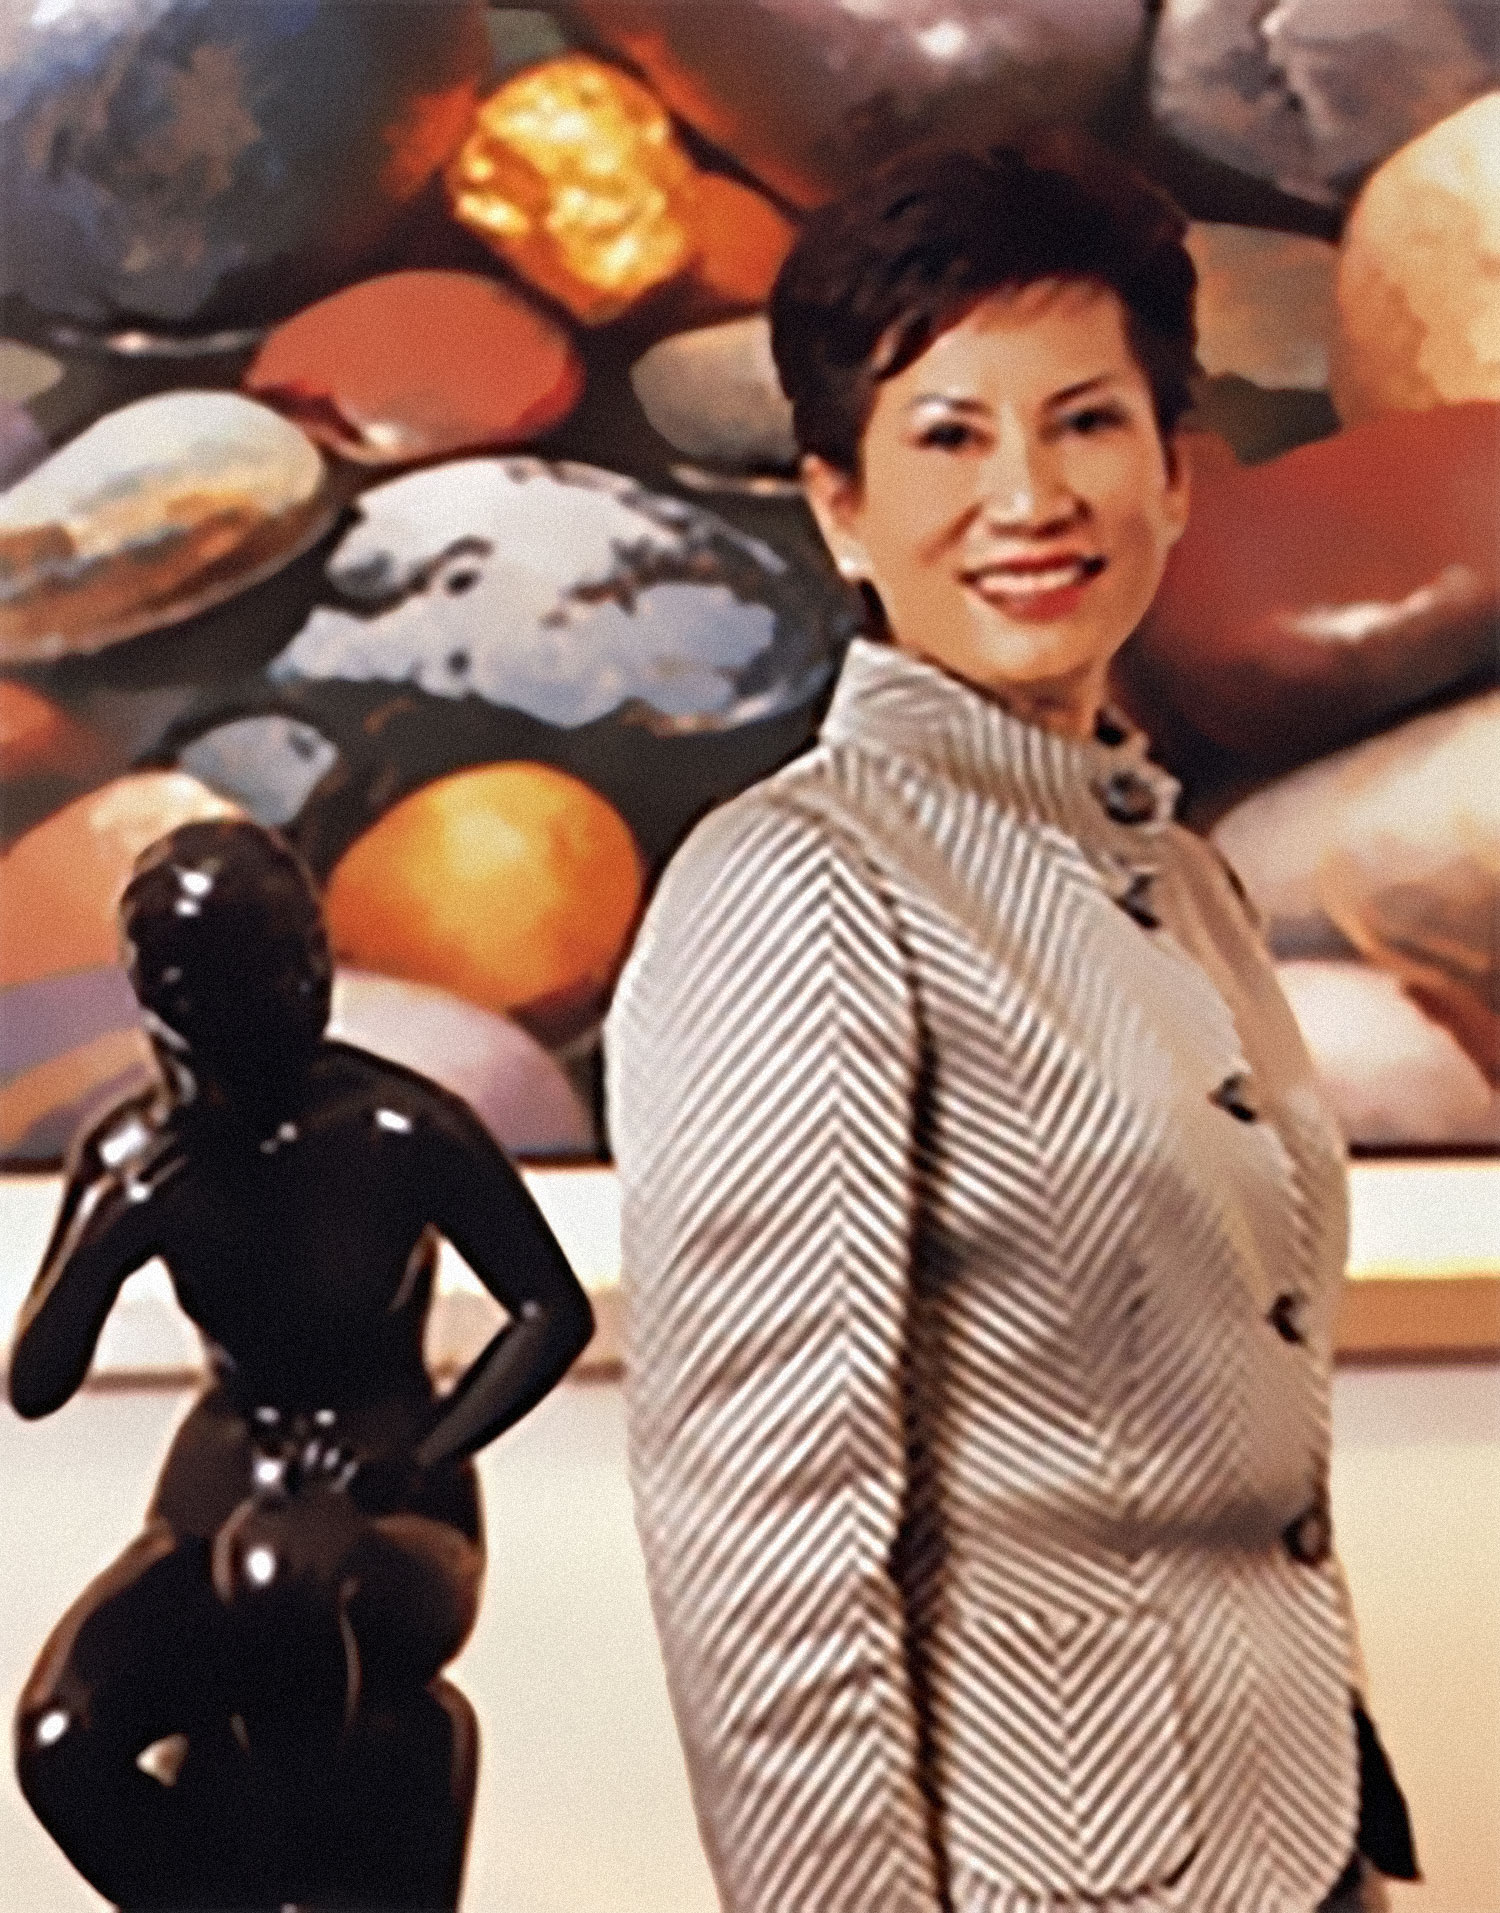 <p>The Sombat Permpoon Gallery : was founded by one of Thailand&rsquo;s most prominent and renowned art collectors,&nbsp;<br />Sombat Wattananthai<br /><br />Miss. Sombat has been a leading collector of the Thai art community for over 40 years. Beginning her impeccable Gallerist career back in 1979 when she opened her first art gallery in Silom, Bangkok. Named Sombat Gallery</p>